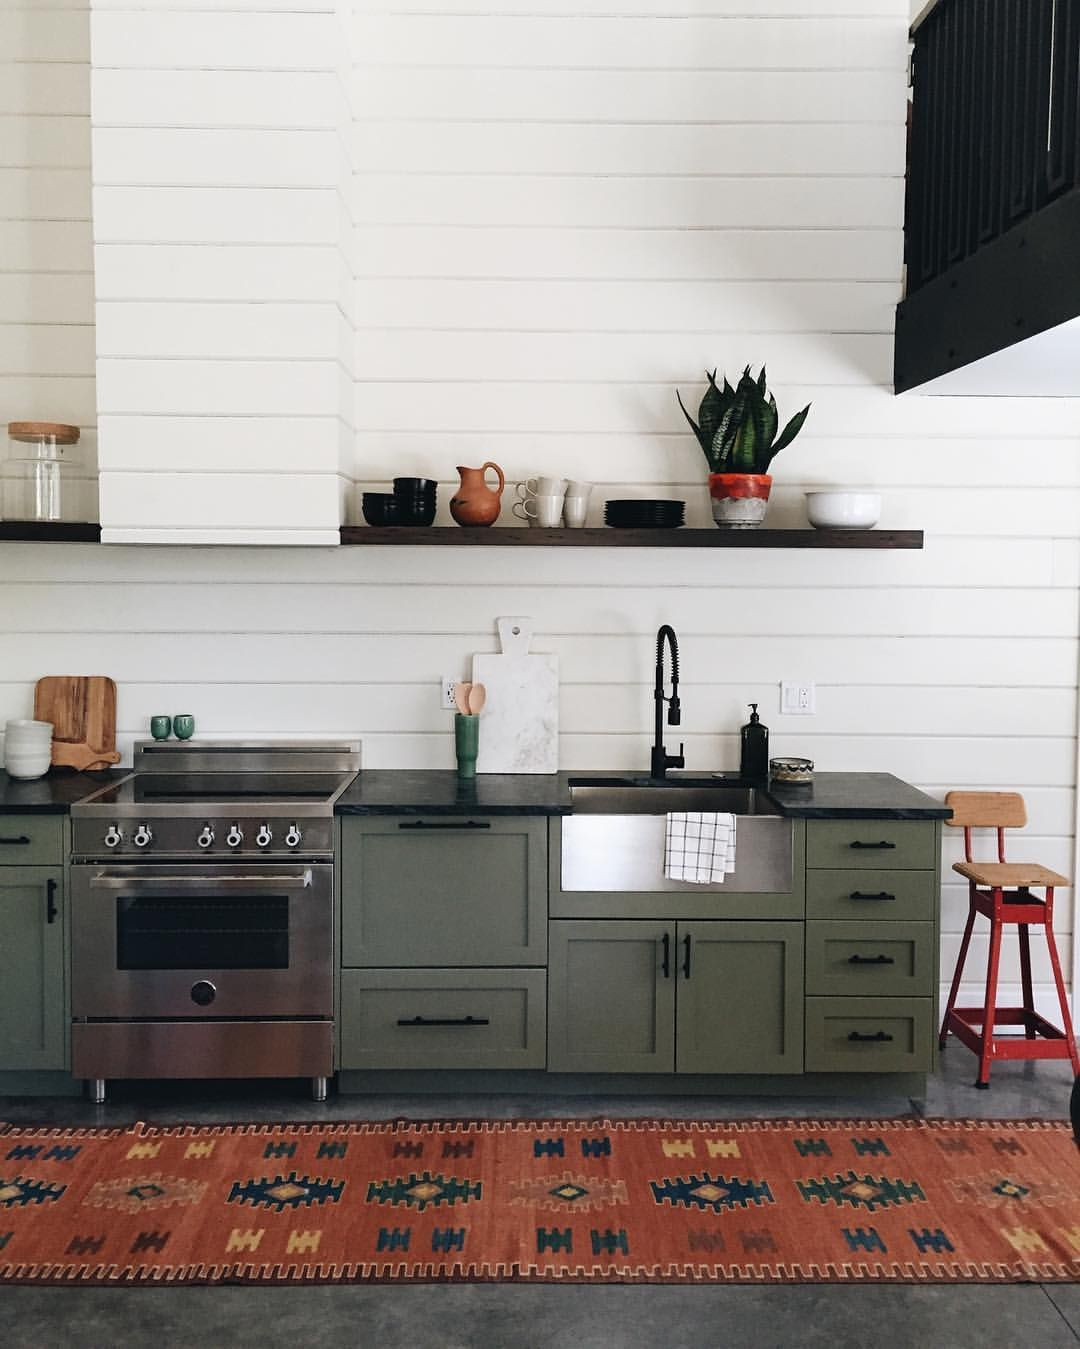 Greene And Greene Kitchen Cabinets: Pin By Seli Enriquez On Dream Home, Ideas... In 2019